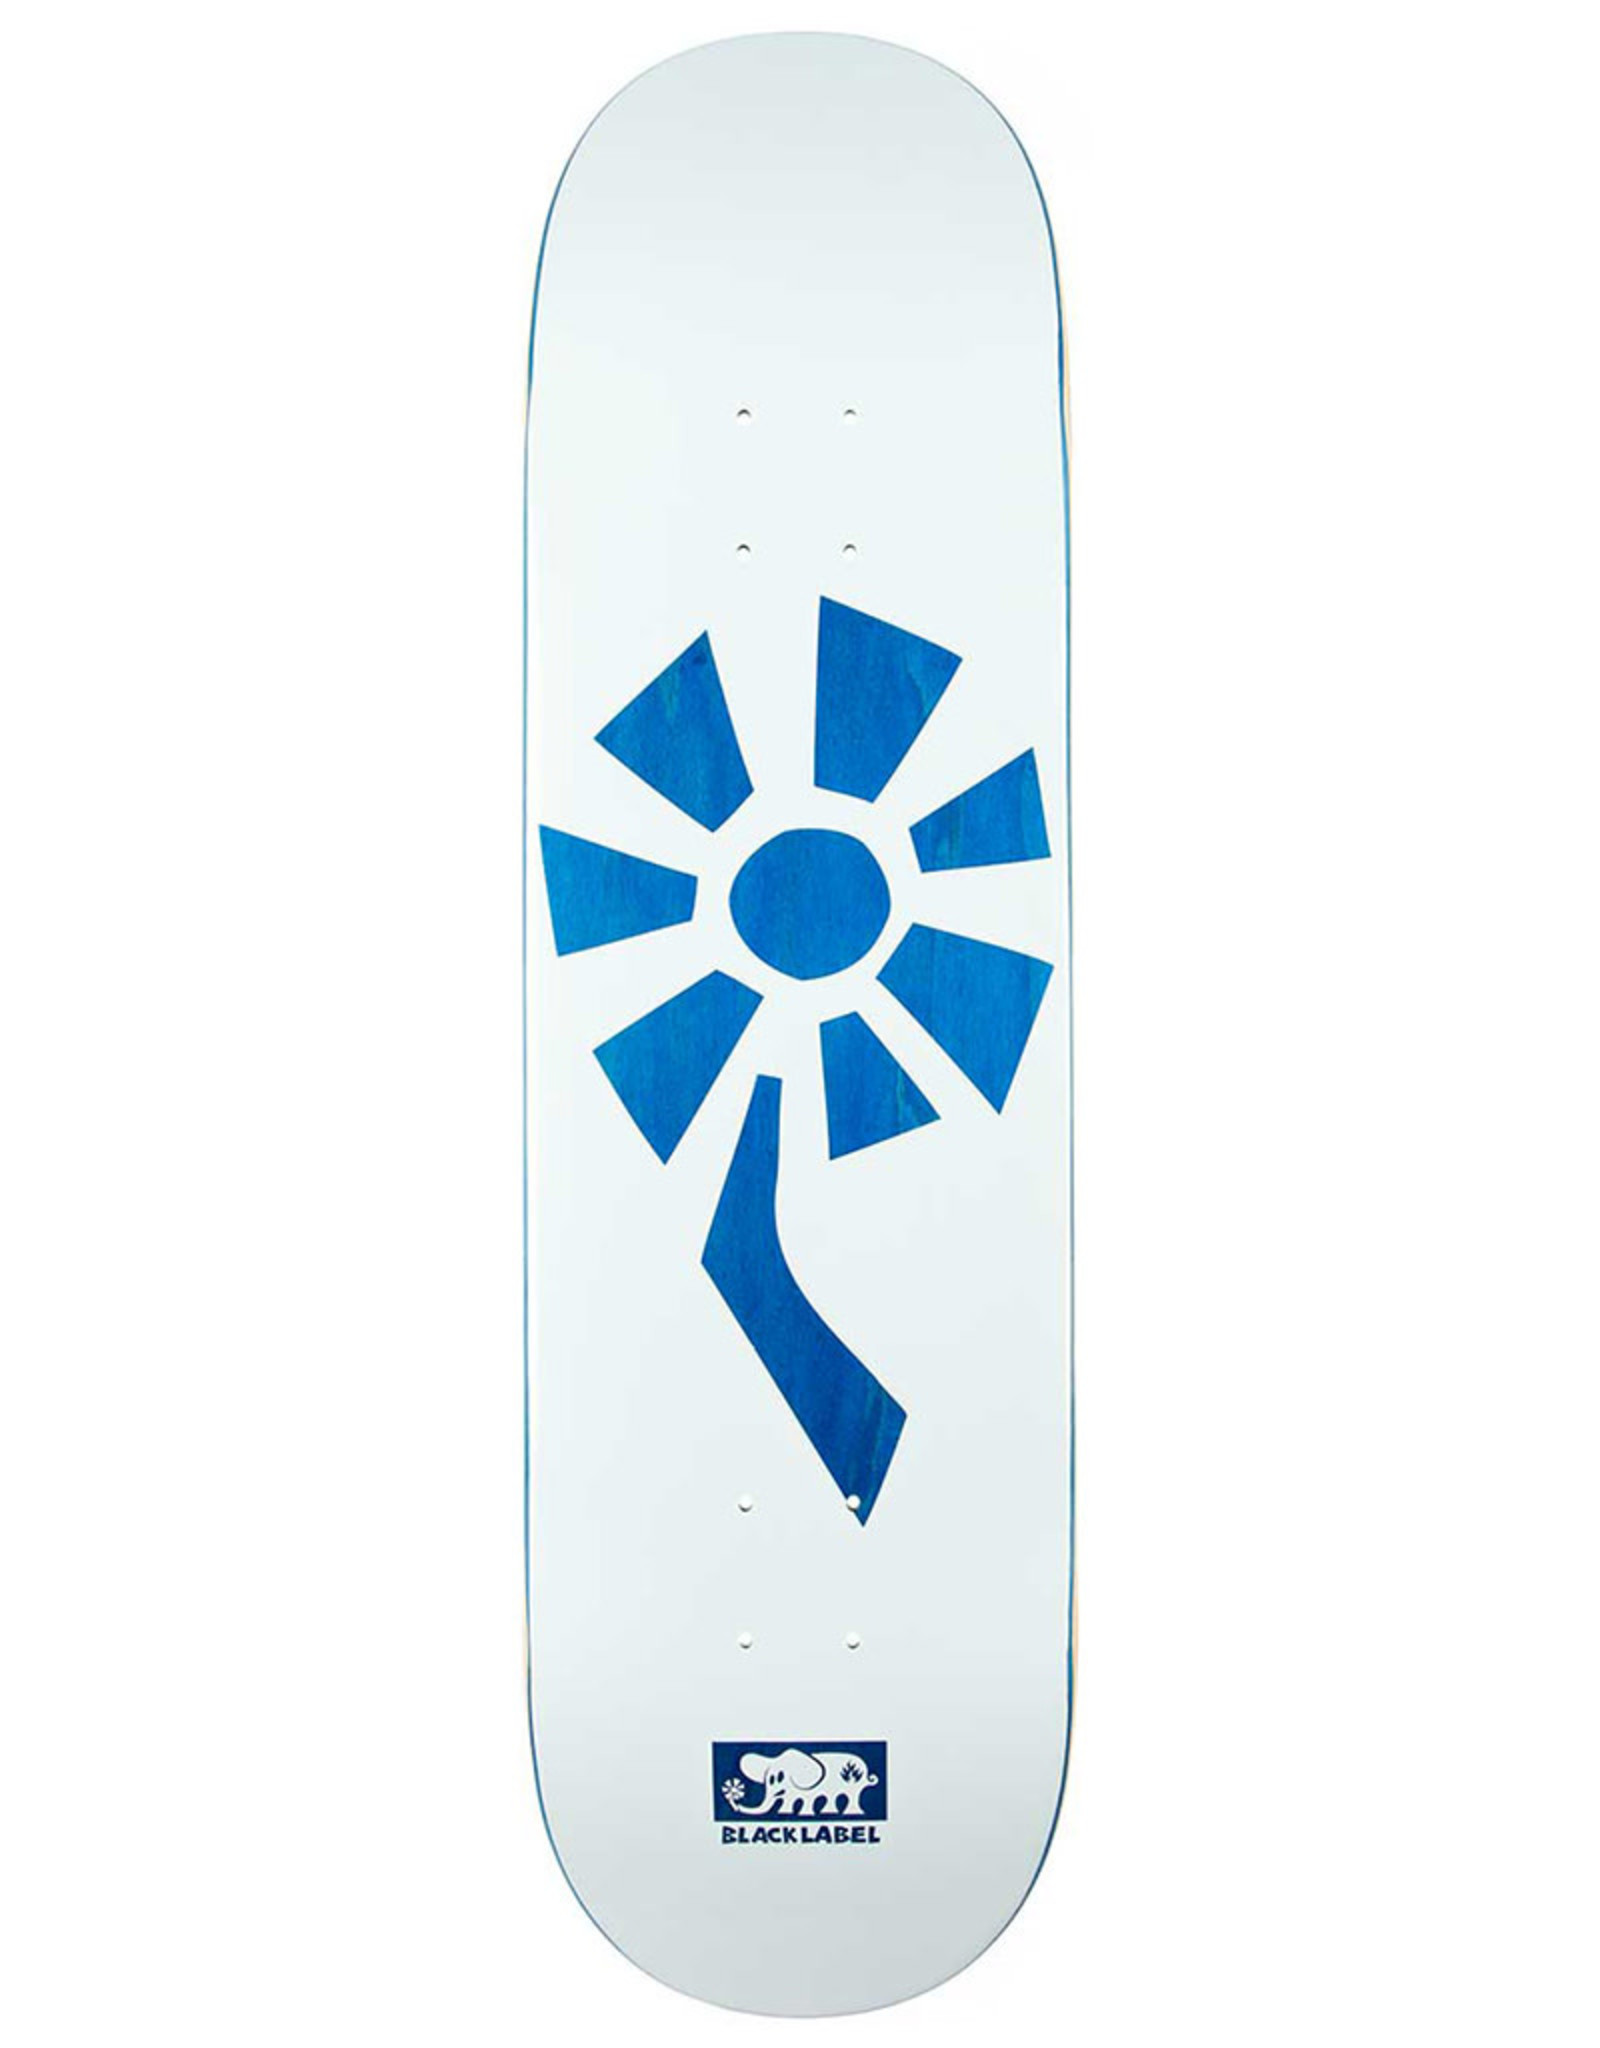 Black Label Black Label Deck Team Flower Power White/Blue (8.5)